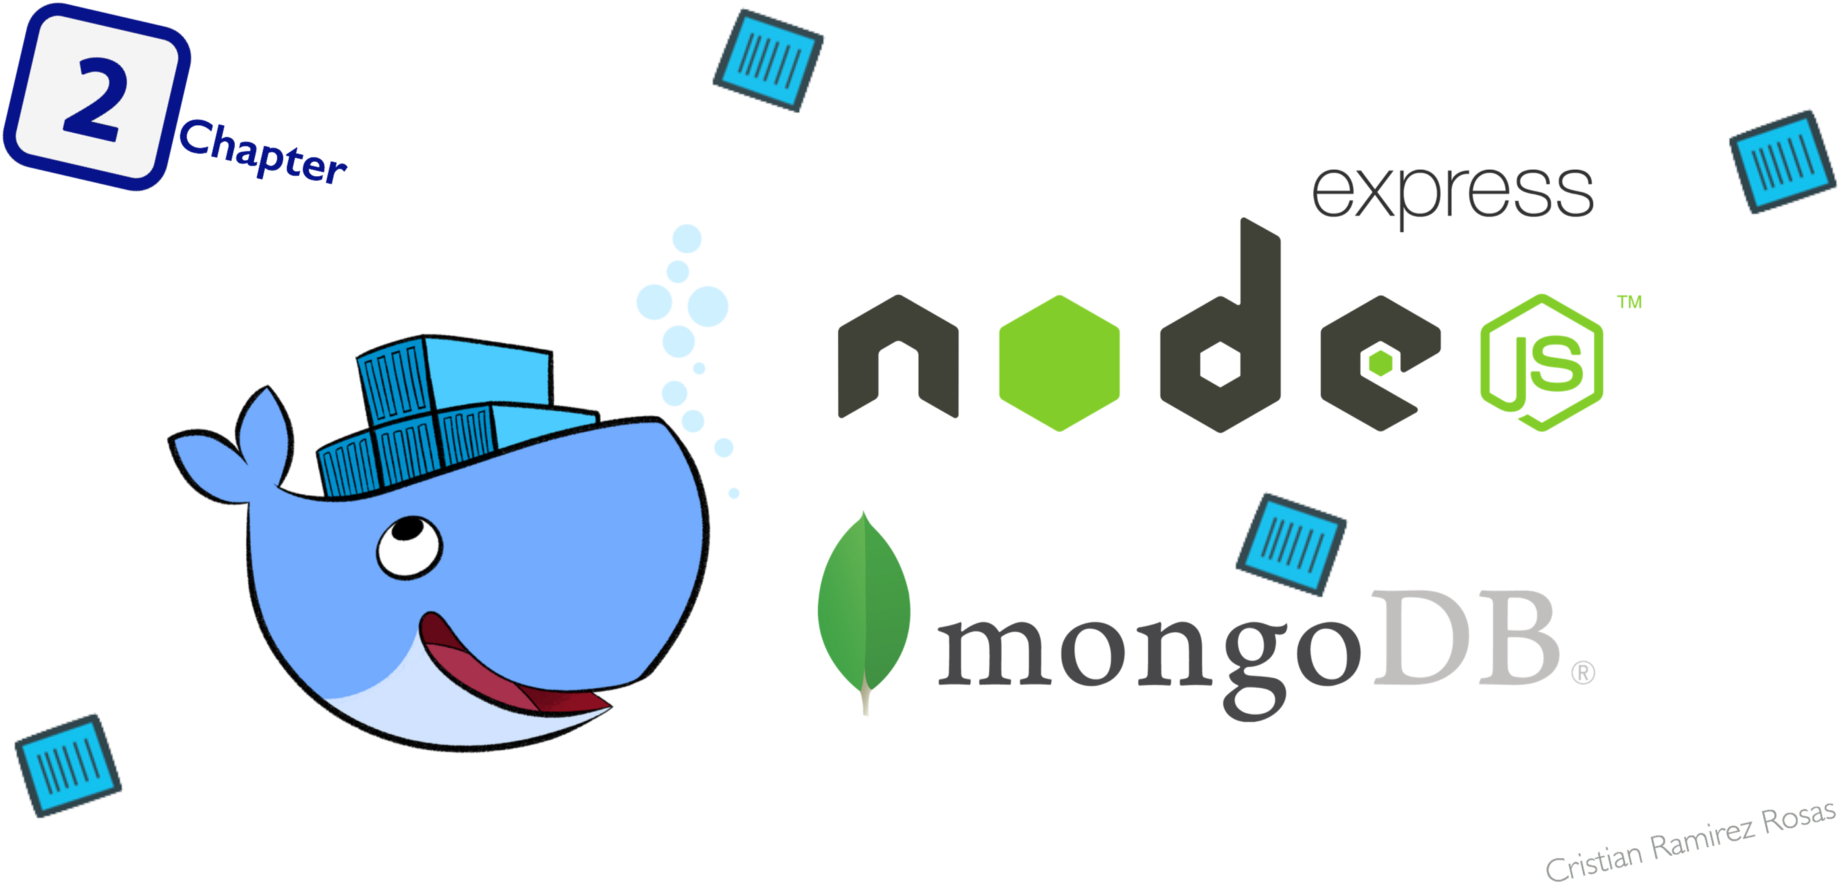 Build a NodeJS cinema microservice and deploying it with docker (part 2)